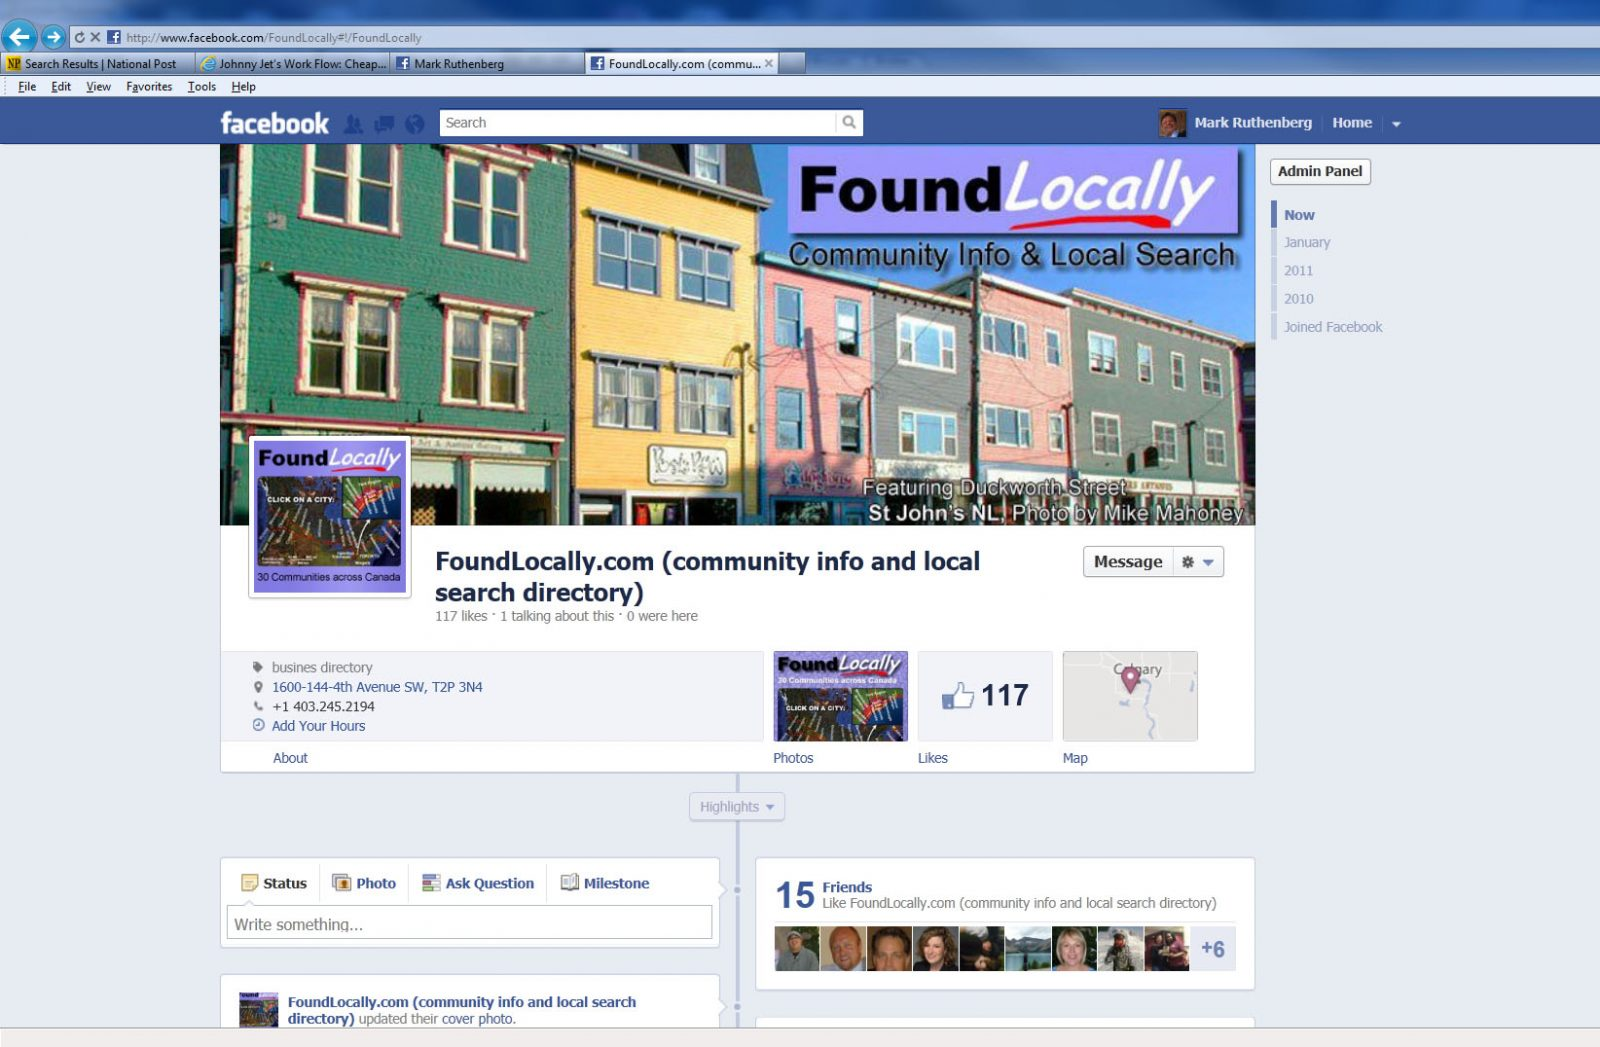 Are You Ready For Facebook's New Timeline View For Your Business Page?